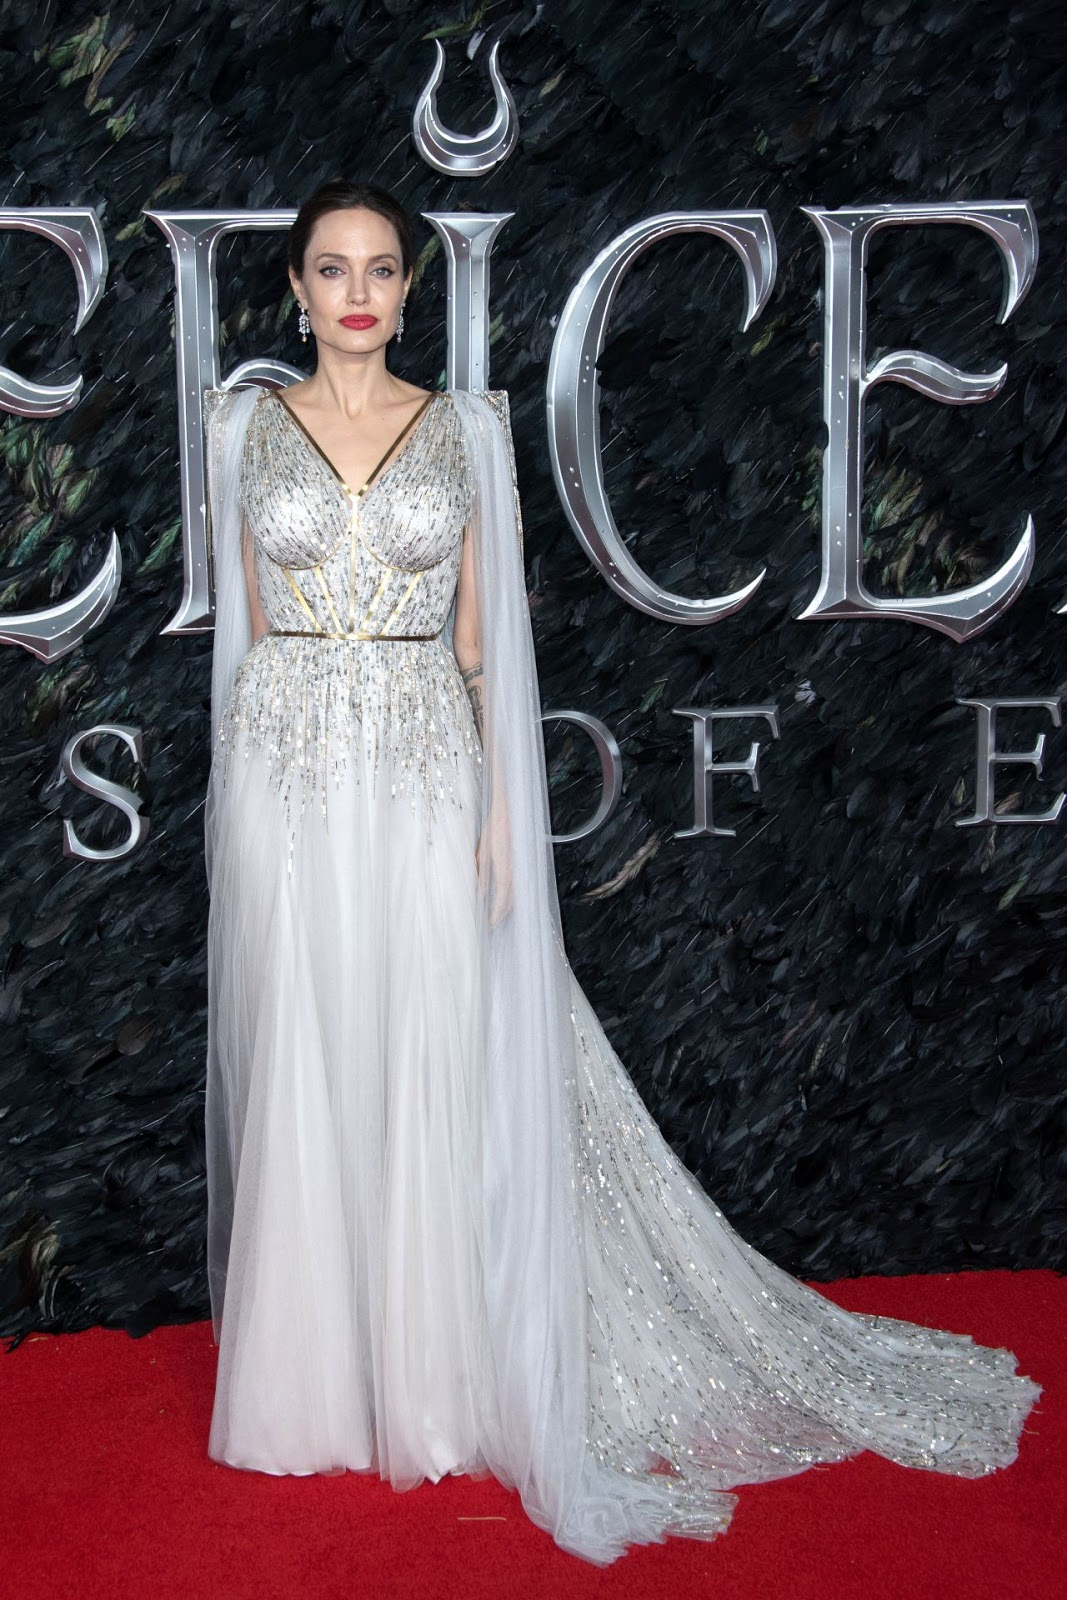 Angelina Jolie wows in a structured silver gown as she attends star-studded Maleficent: Mistress Of Evil premiere in London